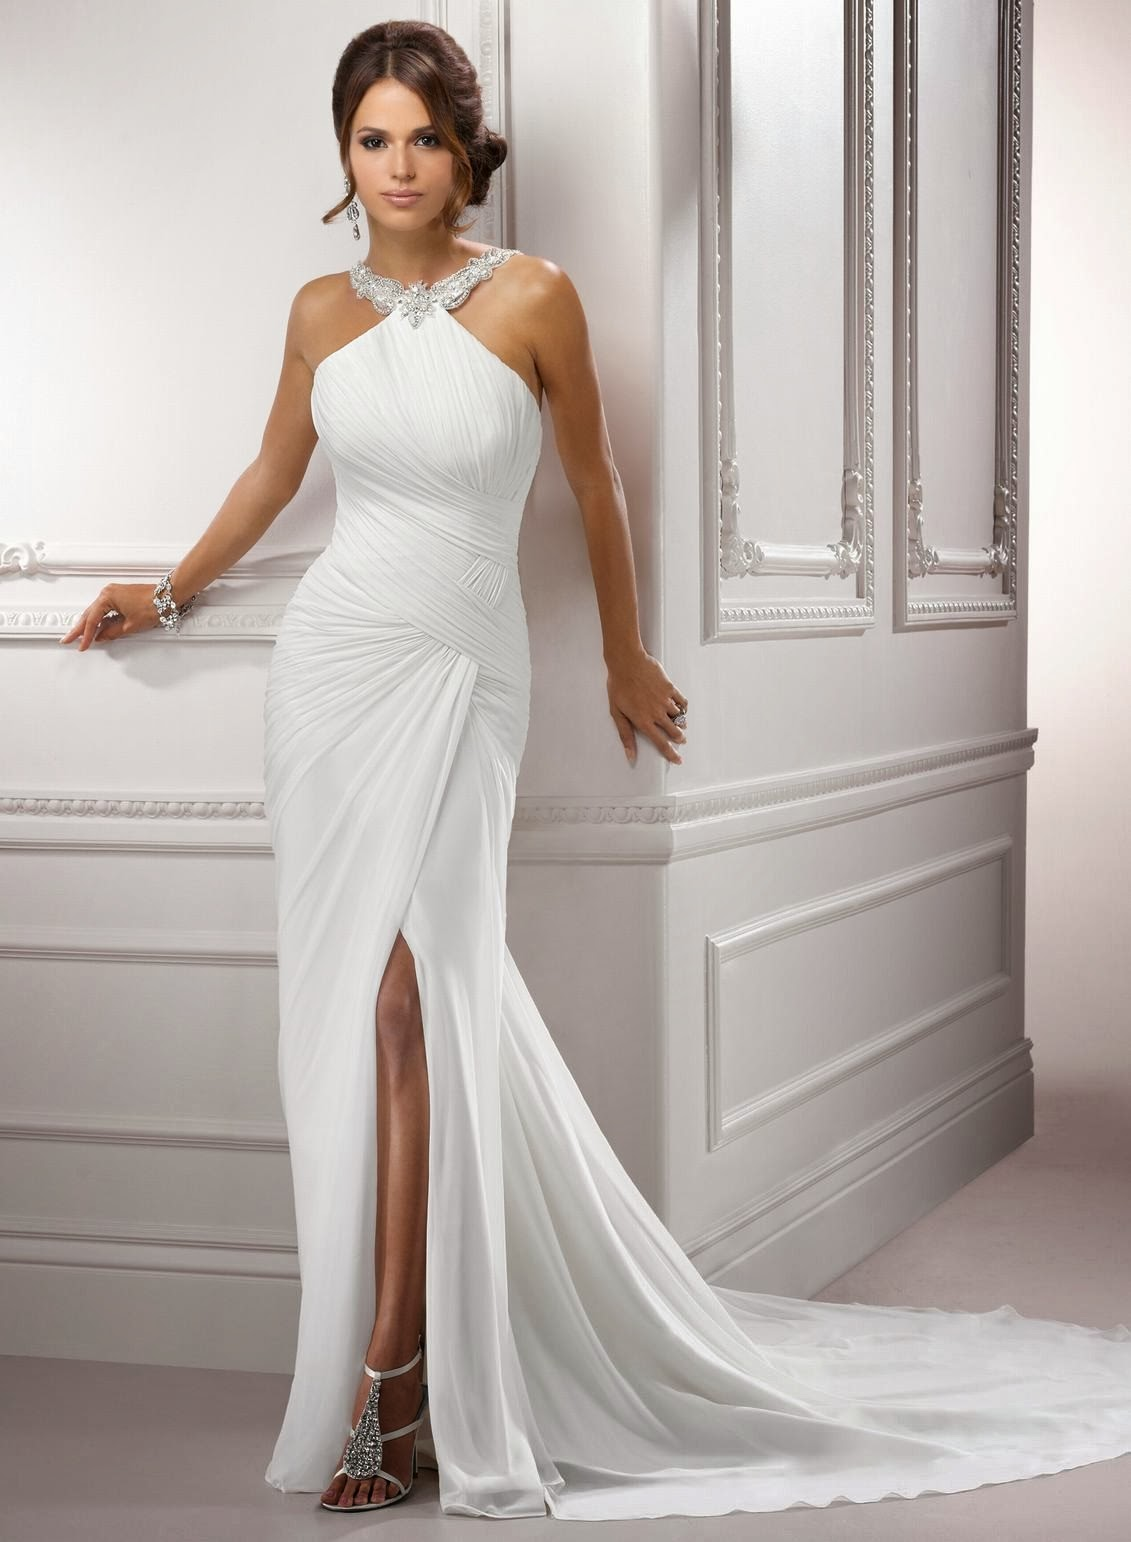 Luxury Short Bridal Gowns 2014 Illustration - Top Wedding Gowns ...